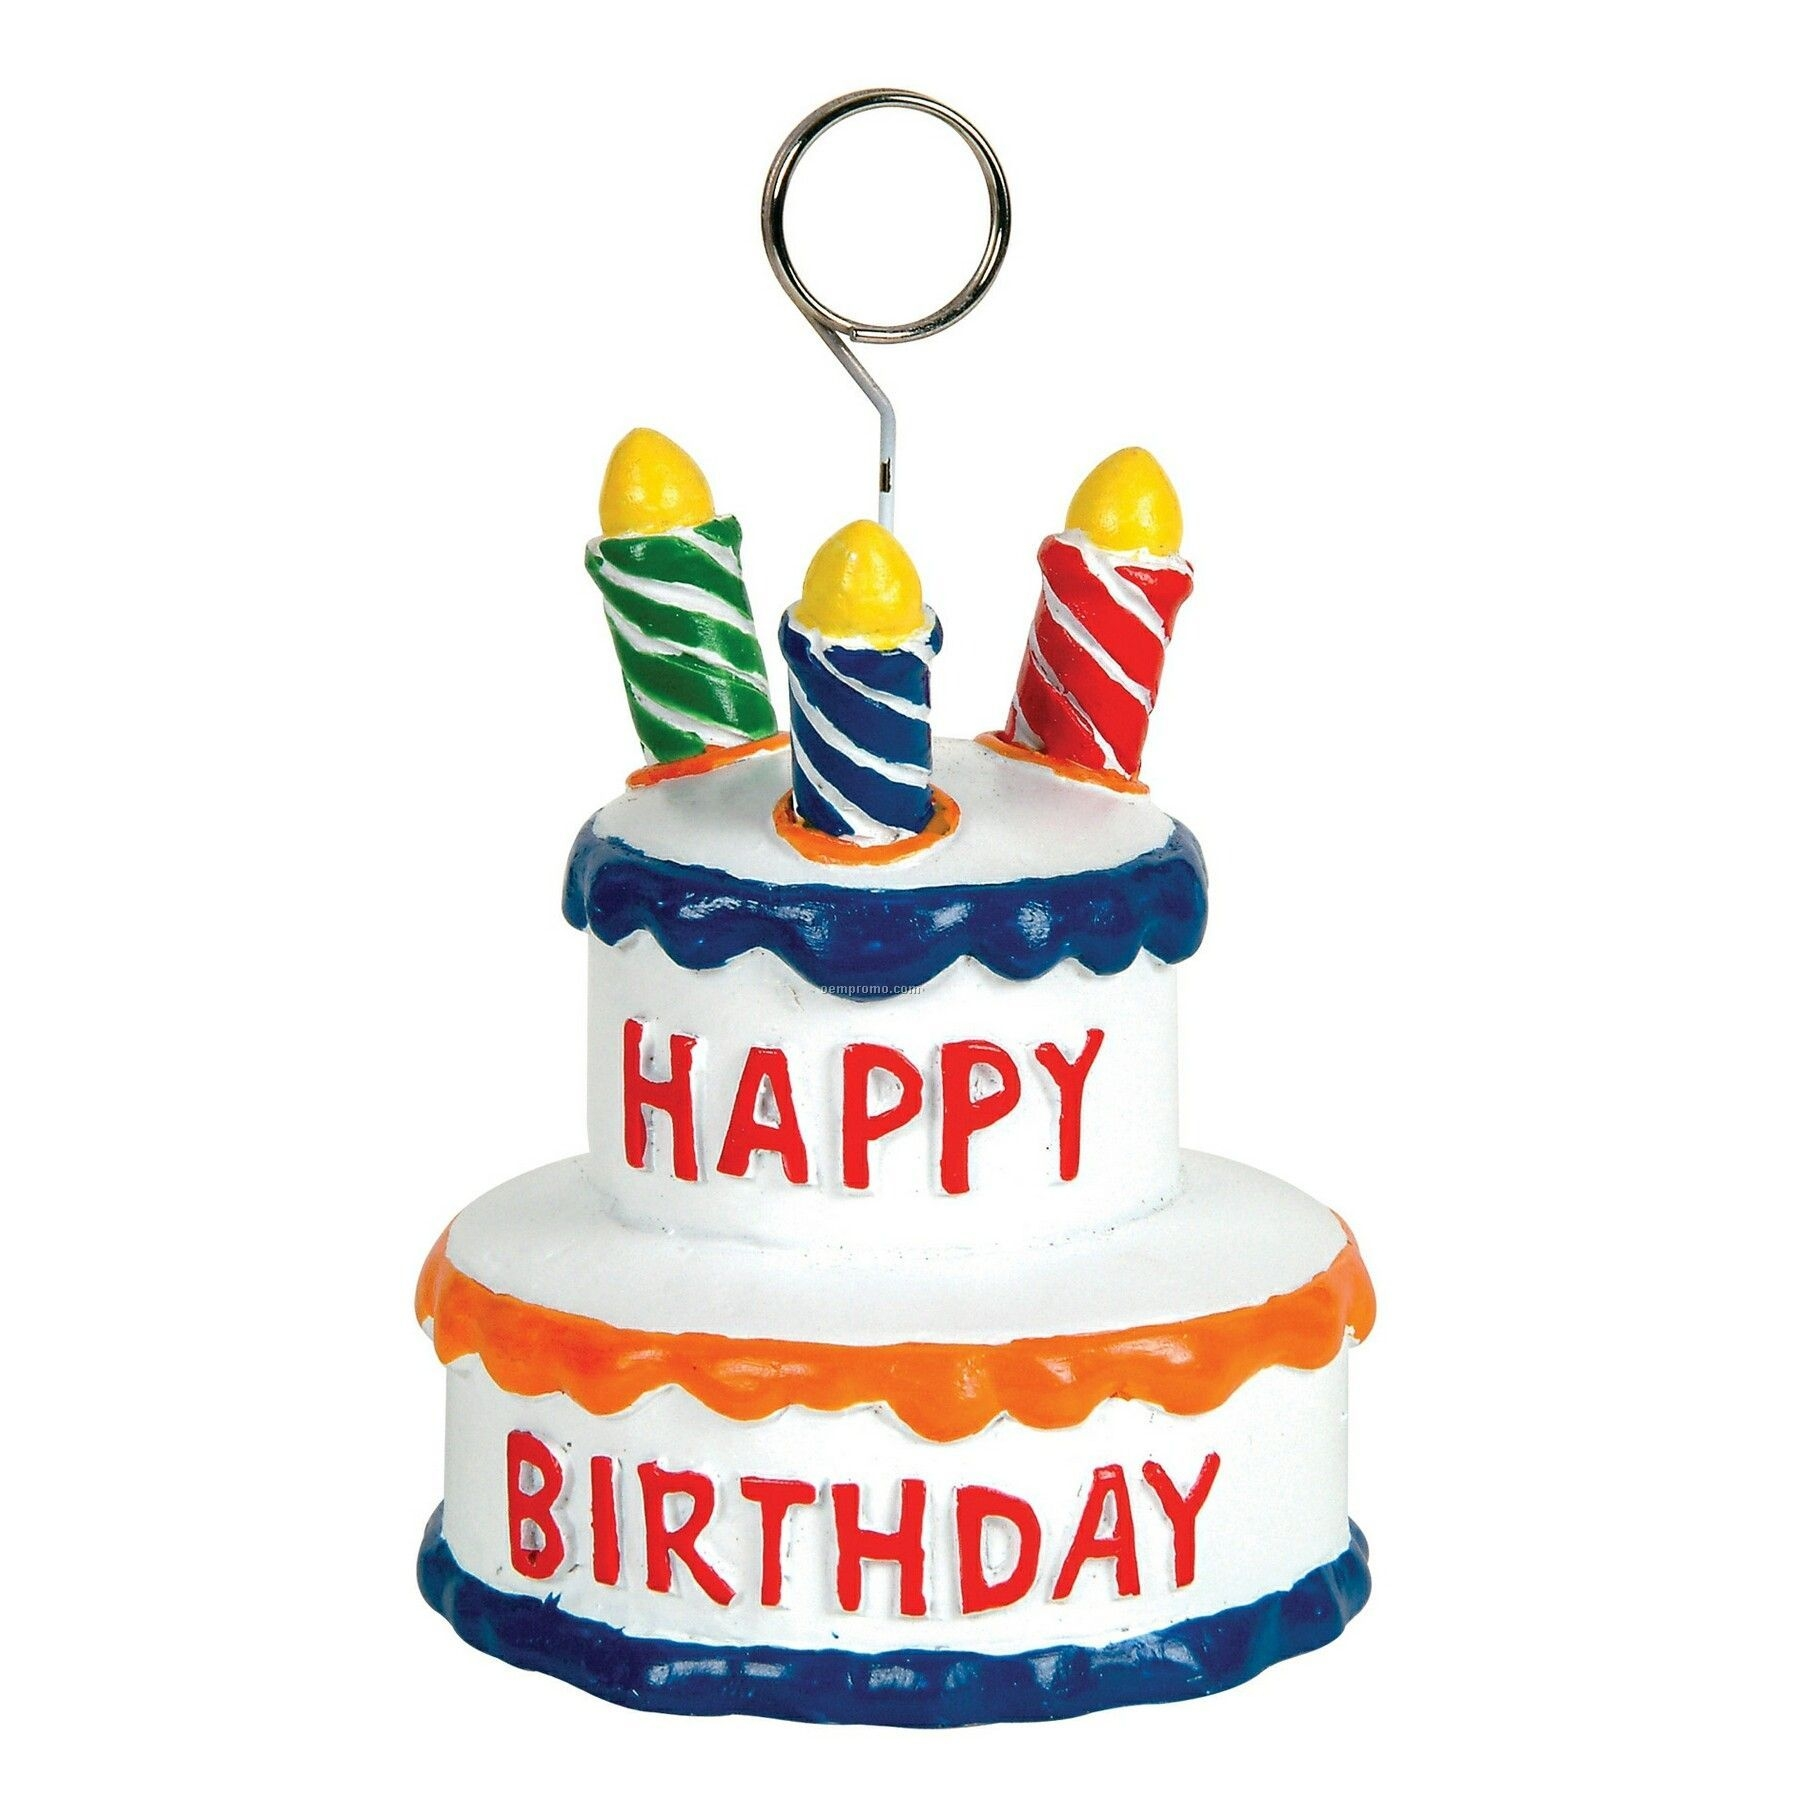 1800x1800 Birthday Cake And Balloons Image Collections